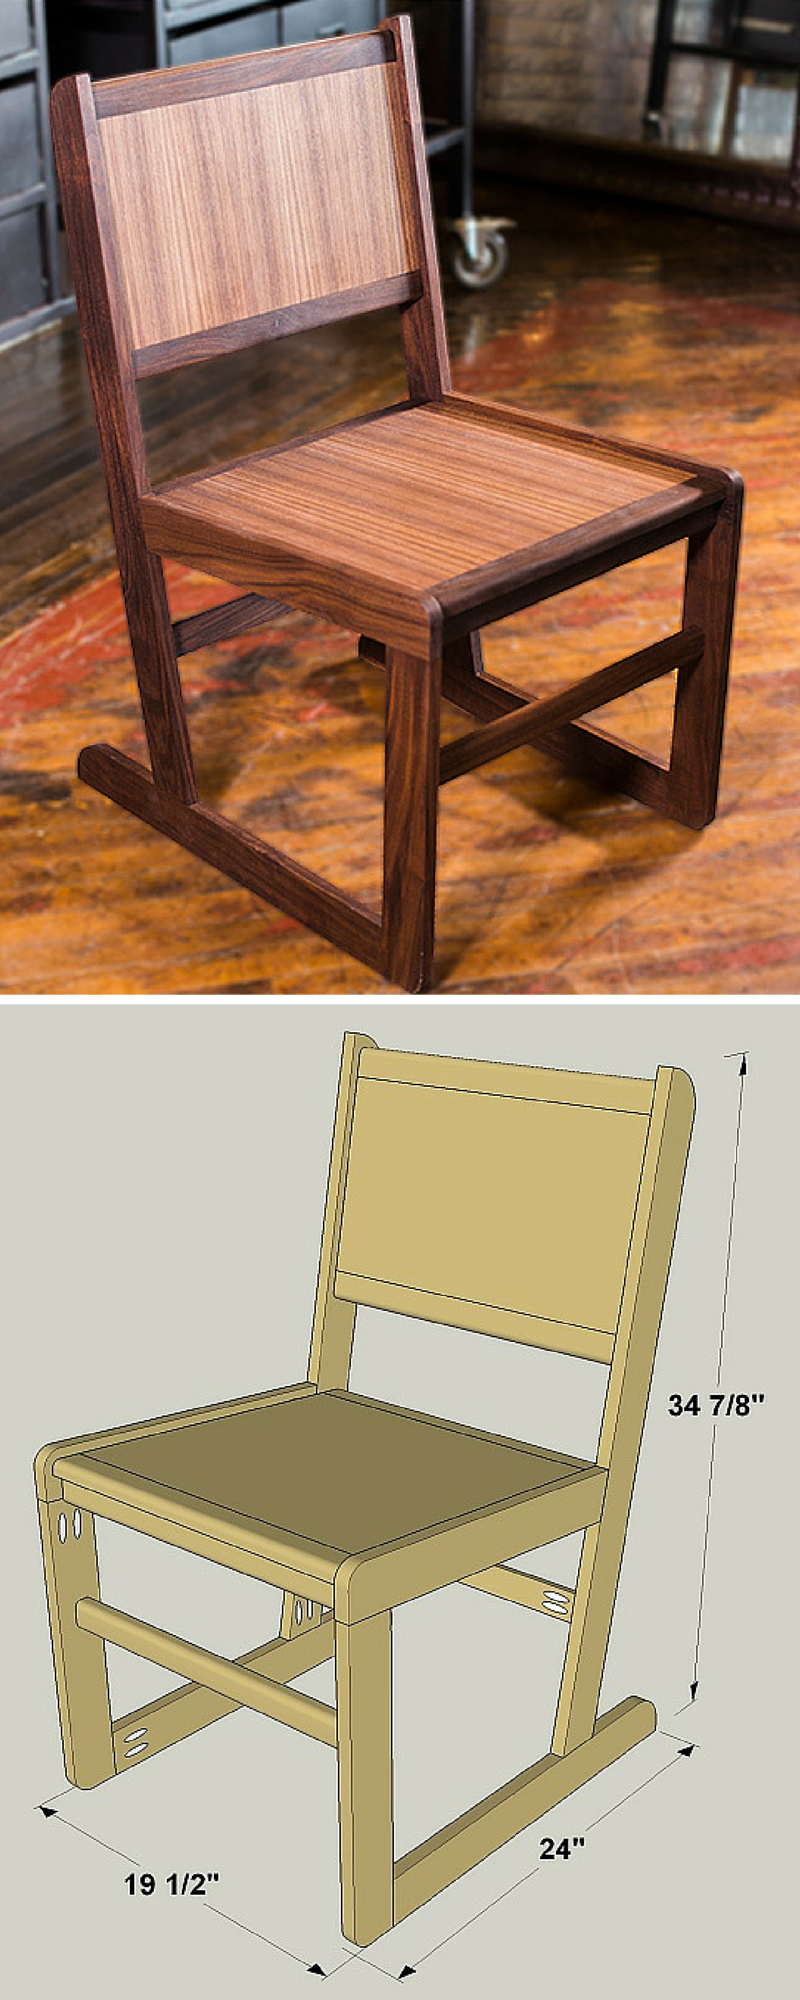 How Are Chairs Made Webbed Chaise Lounge To Build A Diy Dining Room Chair Free Printable Project Plans At Buildsomething Com These Surprisingly Easy